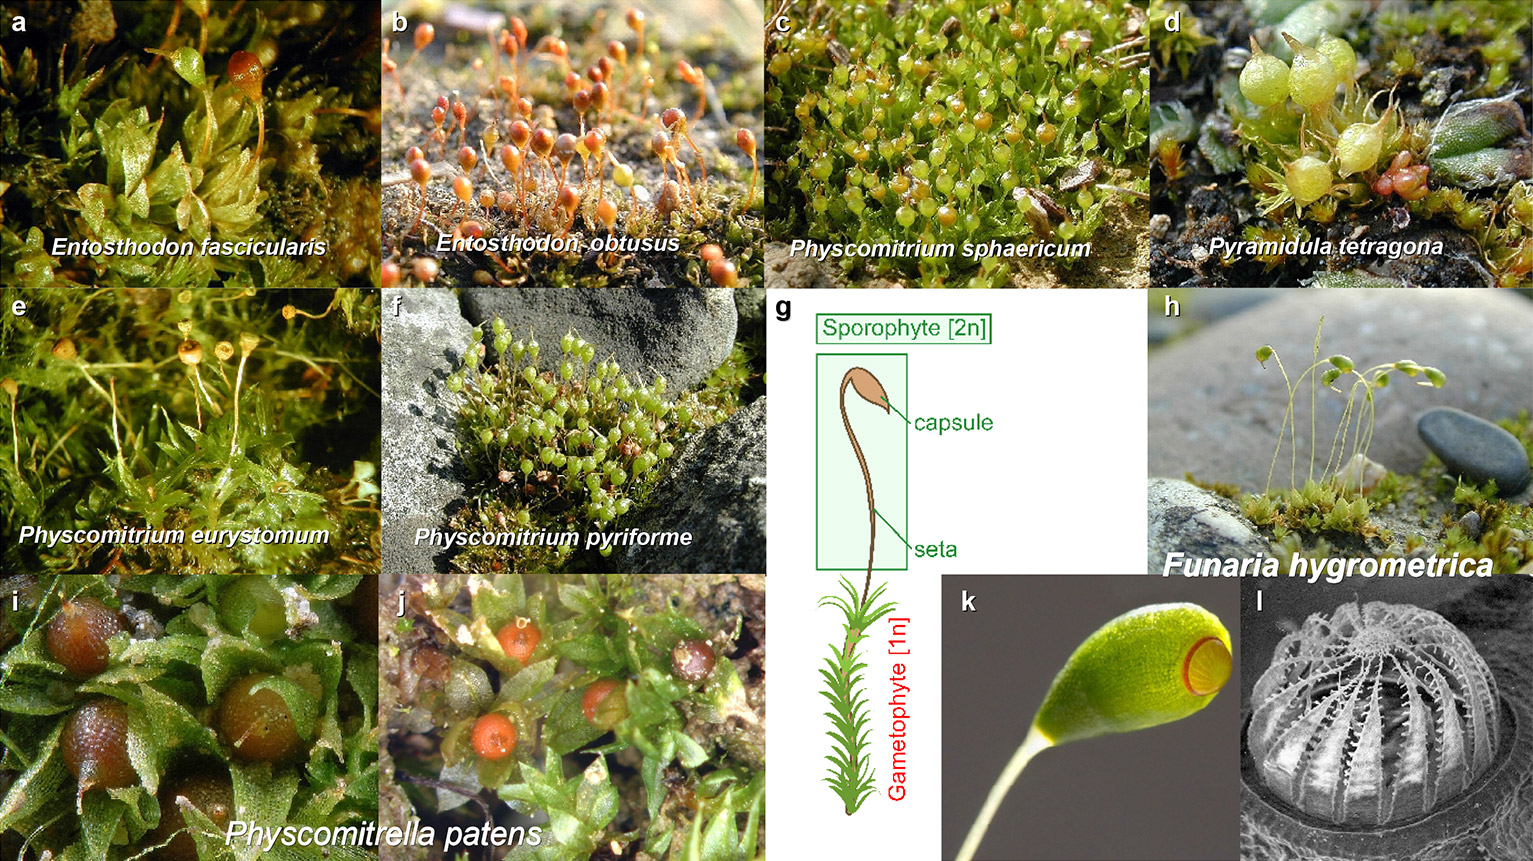 Morphological sporophyte diversity in the moss family Funariaceae